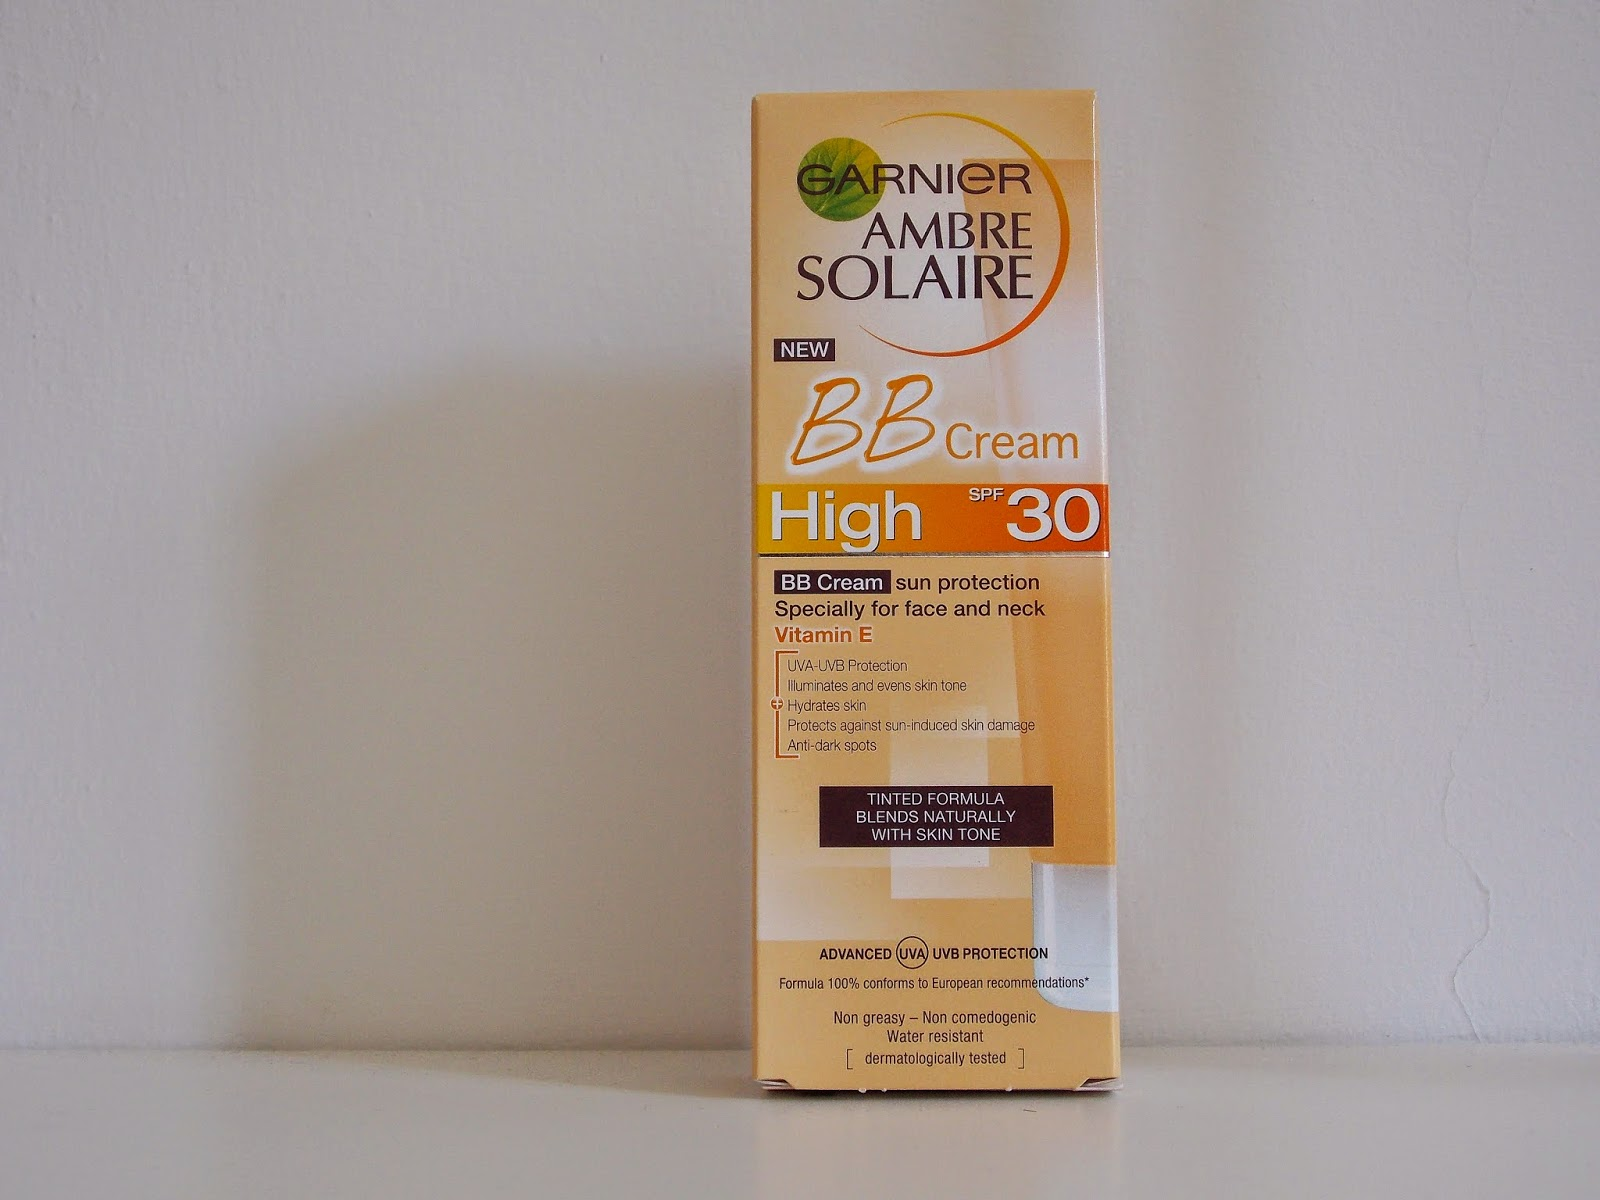 Amber solaire tinted facial sunscreen images